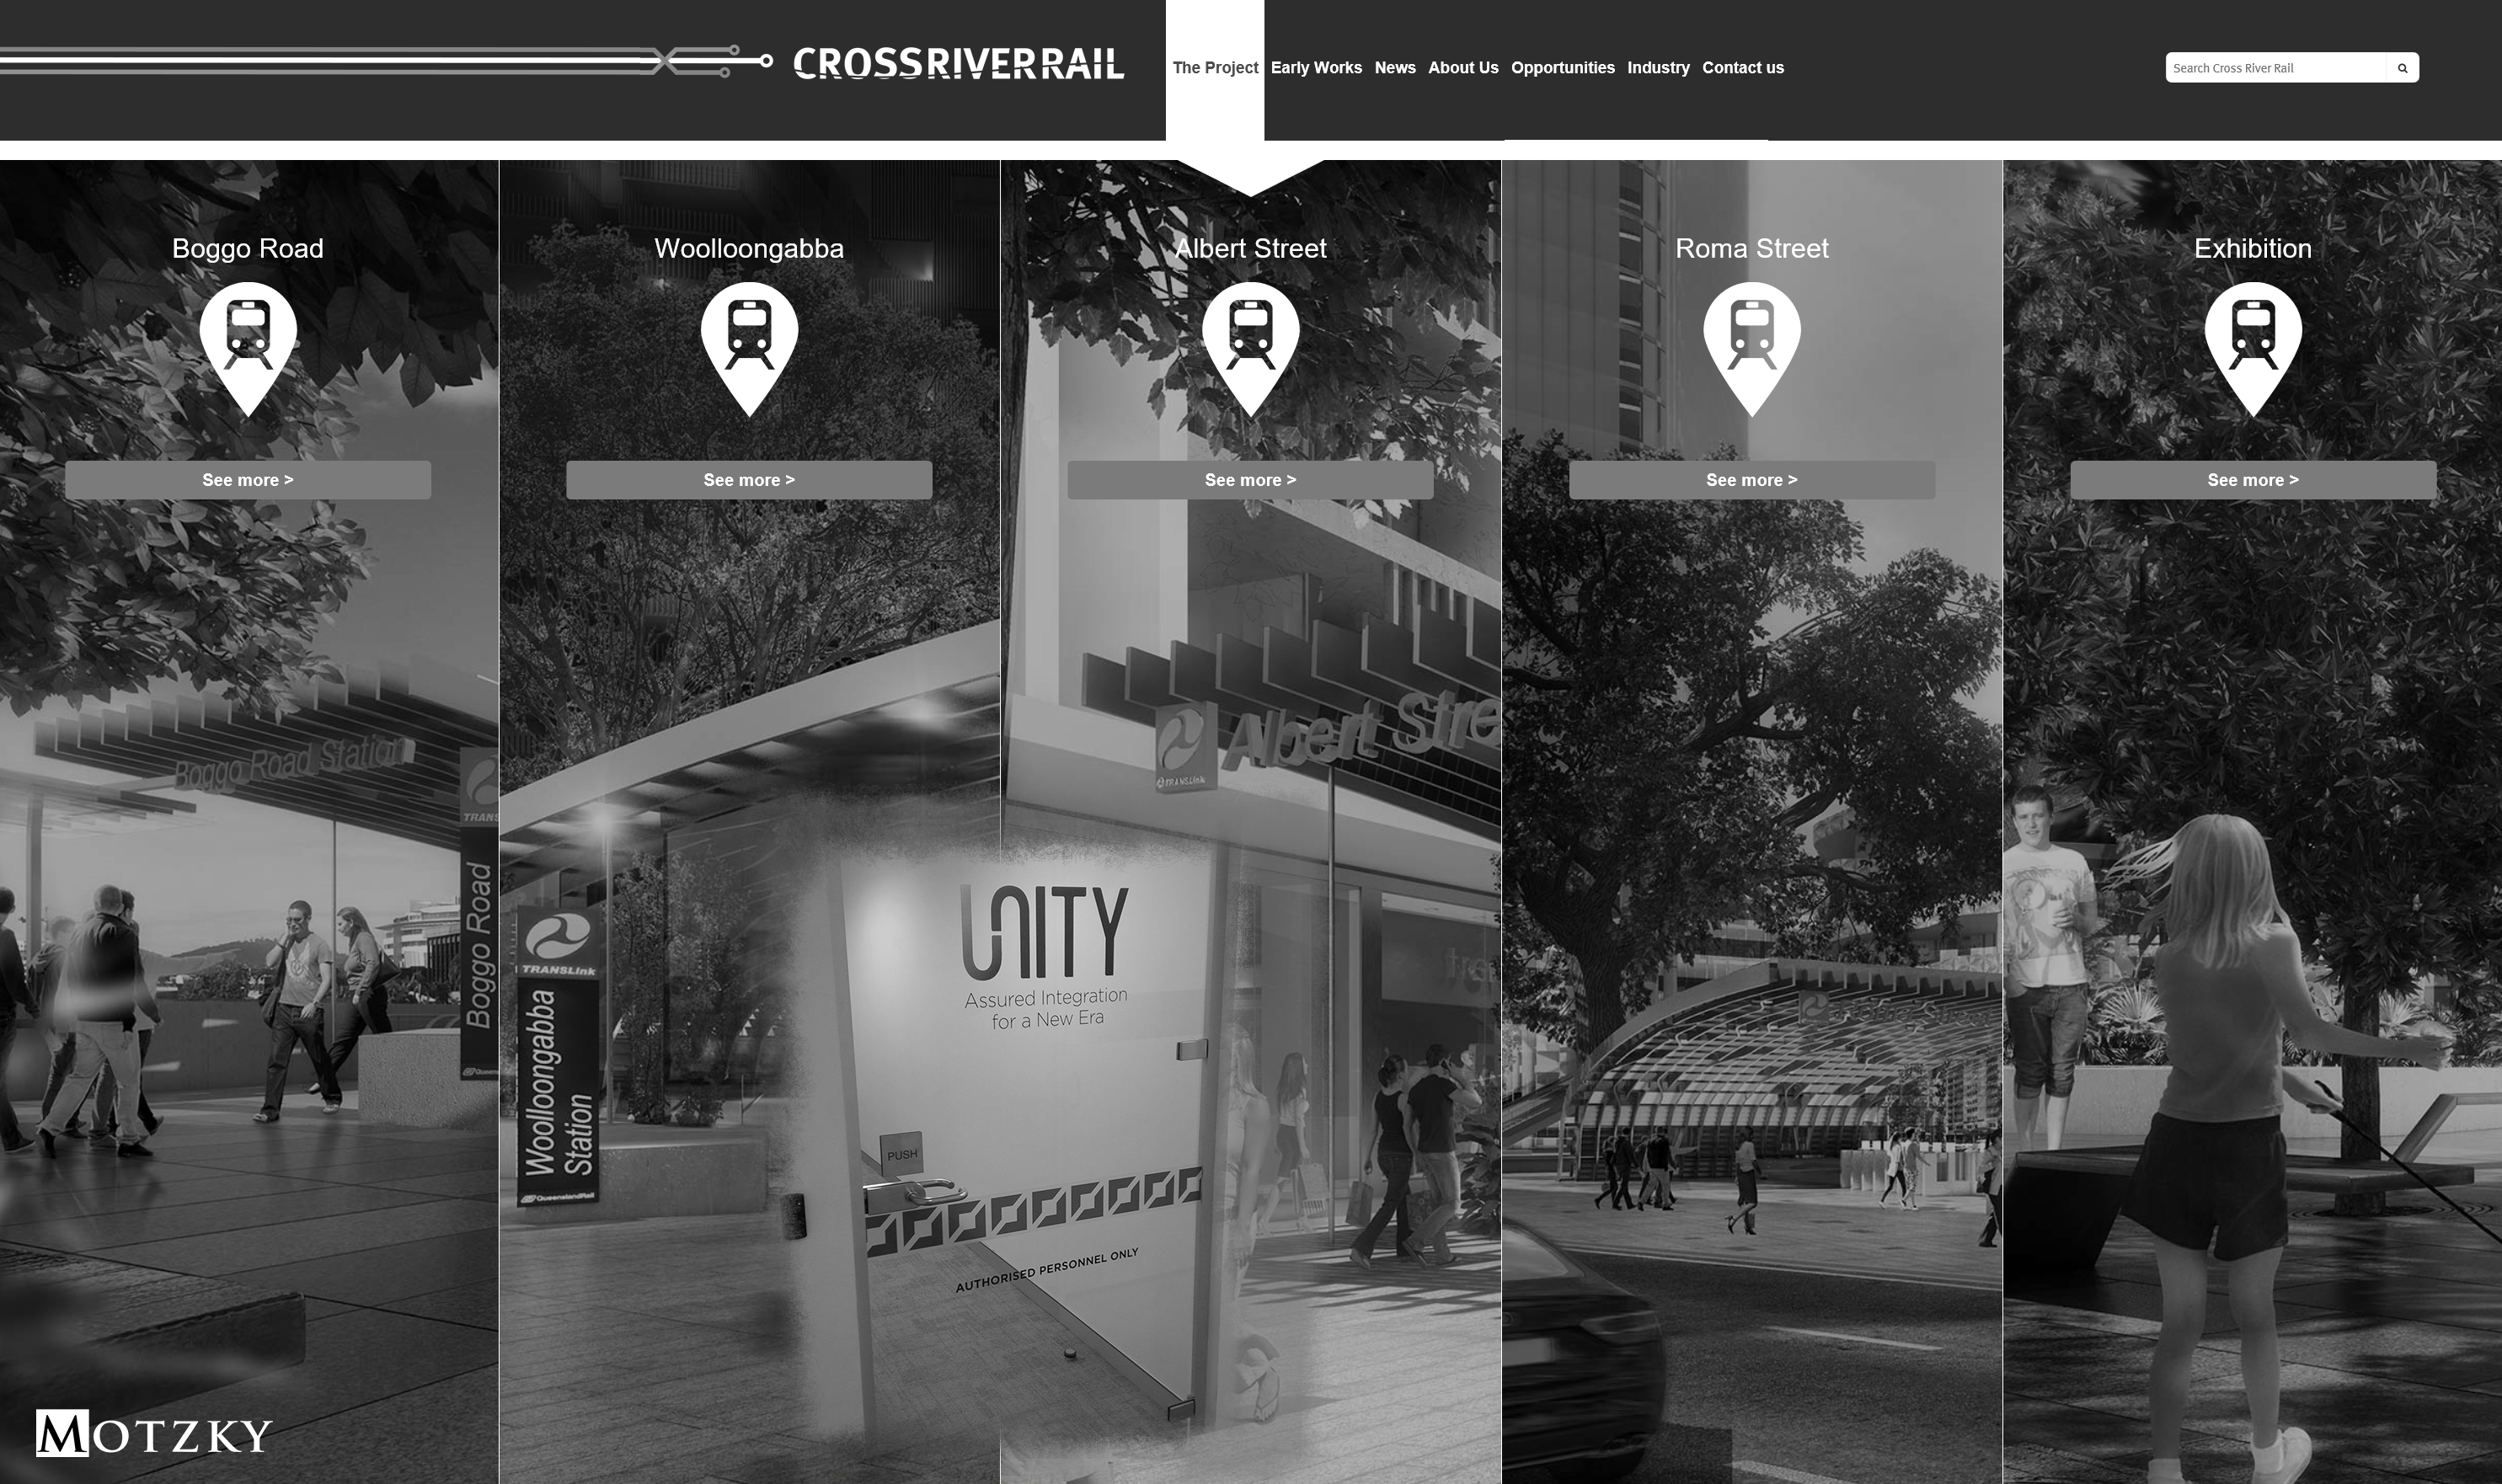 CrossRiverRail - UNITY involvement